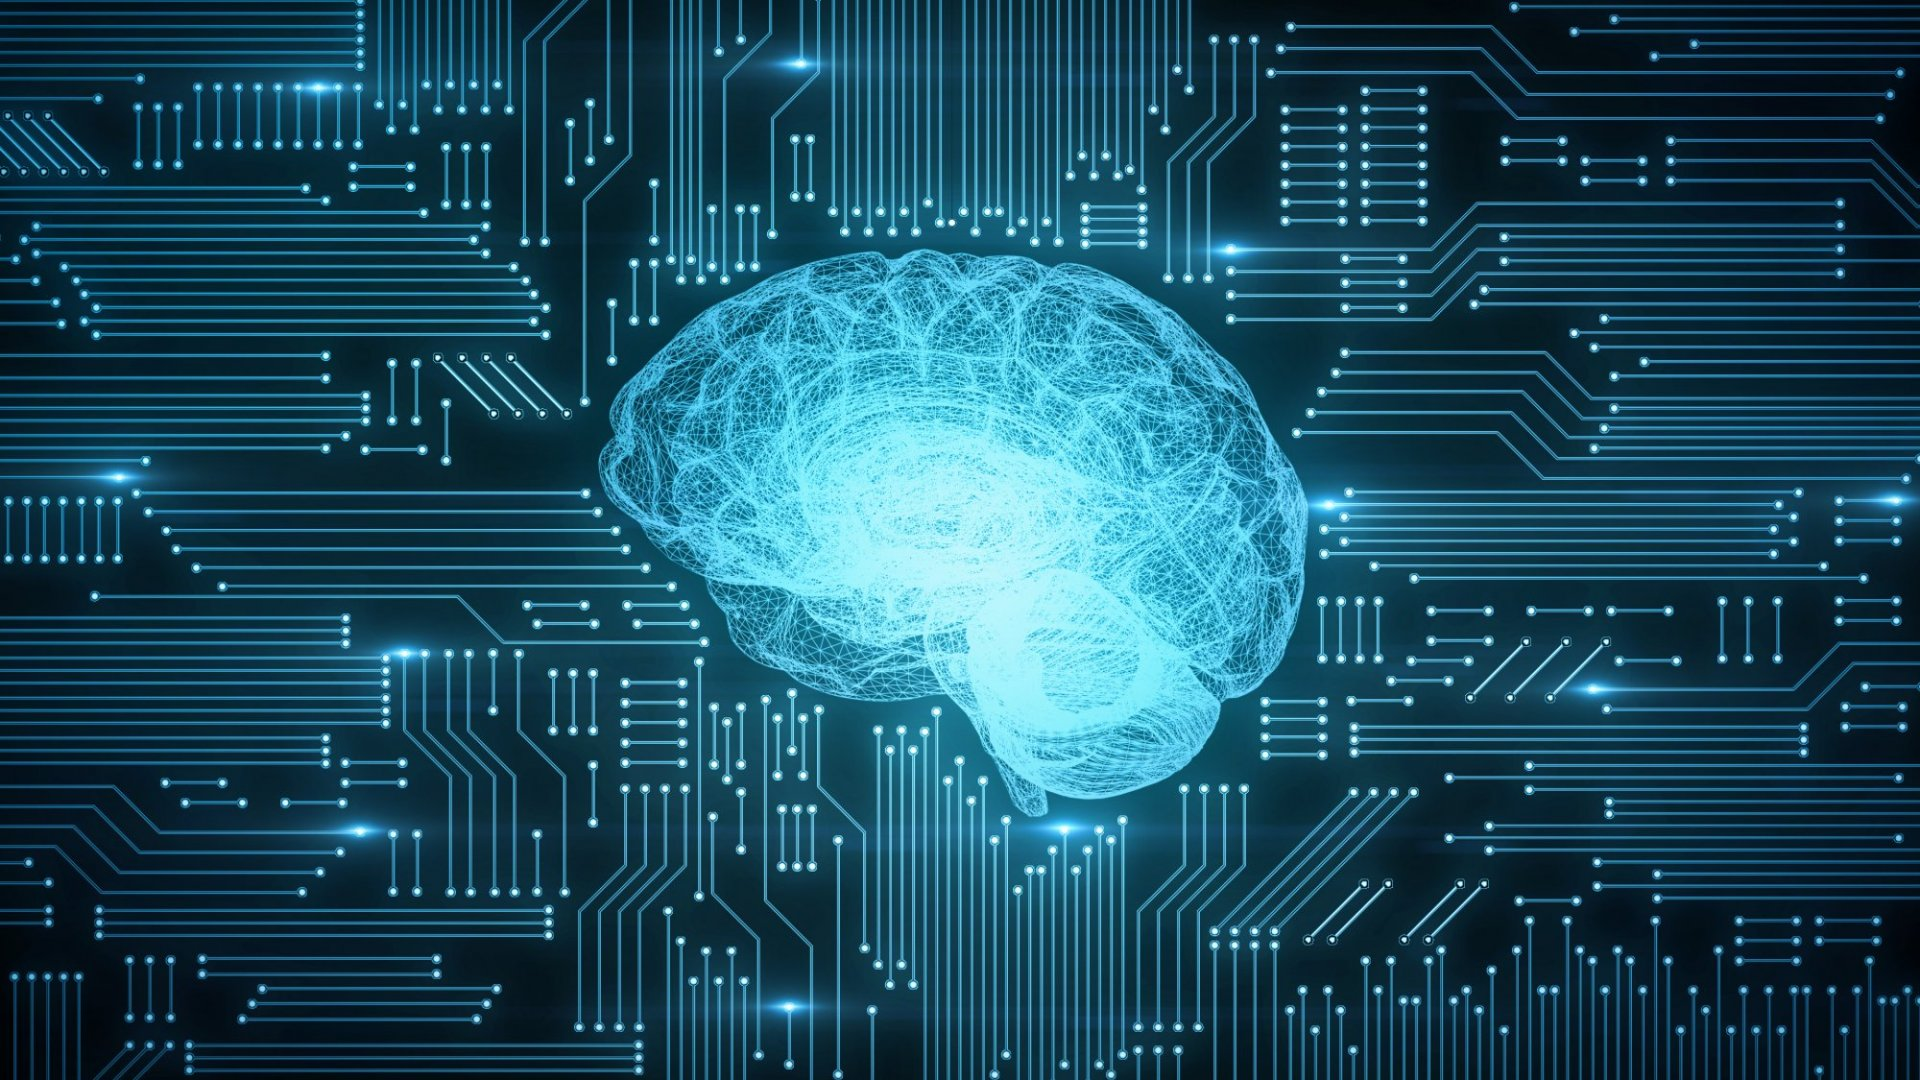 Want to Get Up to Speed on A.I.? Read These 7 Books